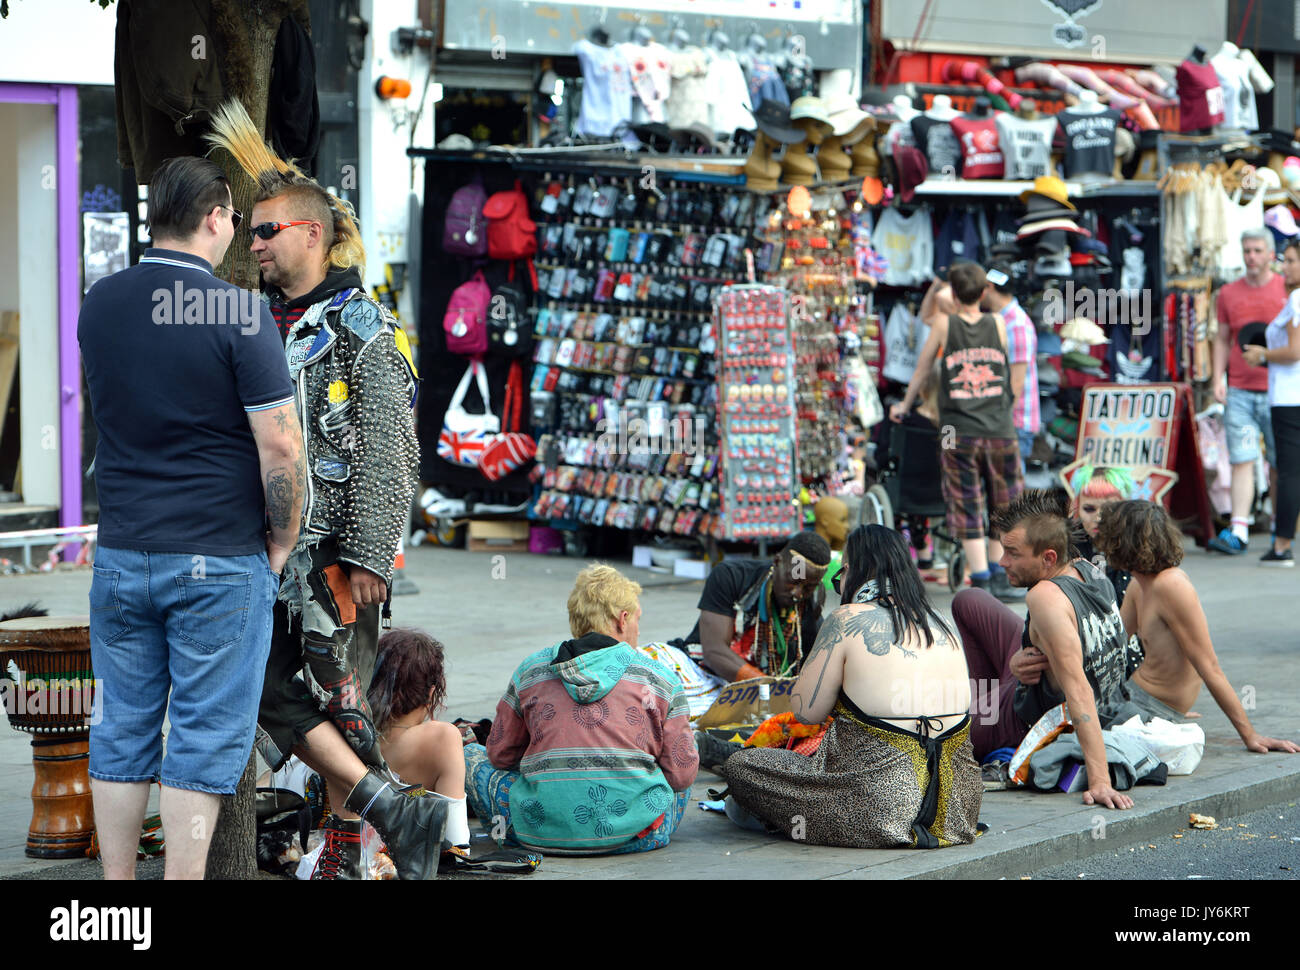 Group of young people in Camden, London. - Stock Image